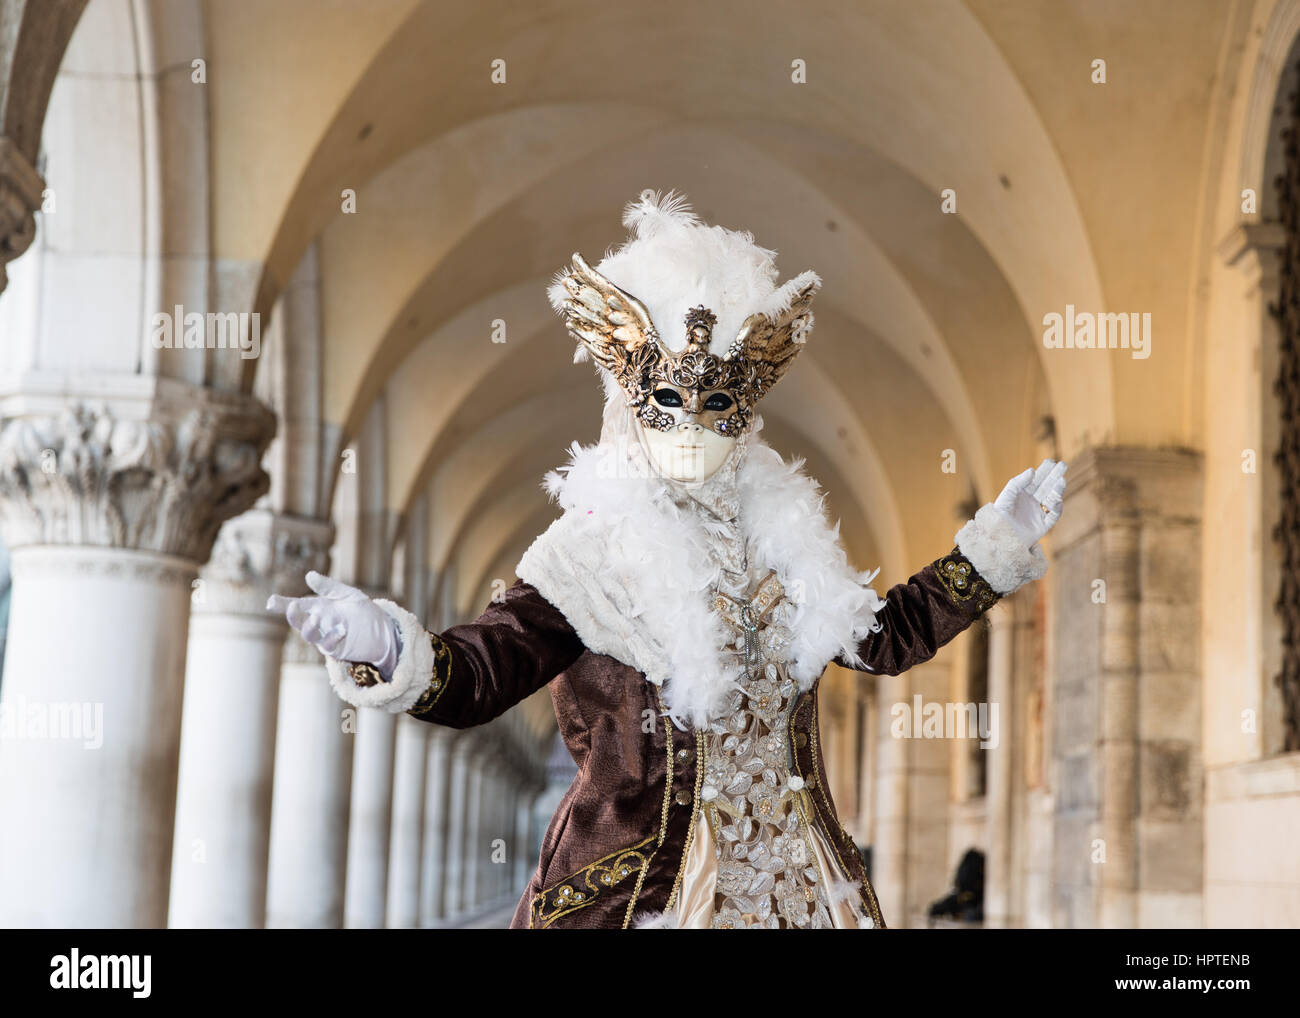 Venice, Italy. 25th February, 2017. People wearing carnival costumes pose during a clear, sunrise next to St Marks' - Stock Image